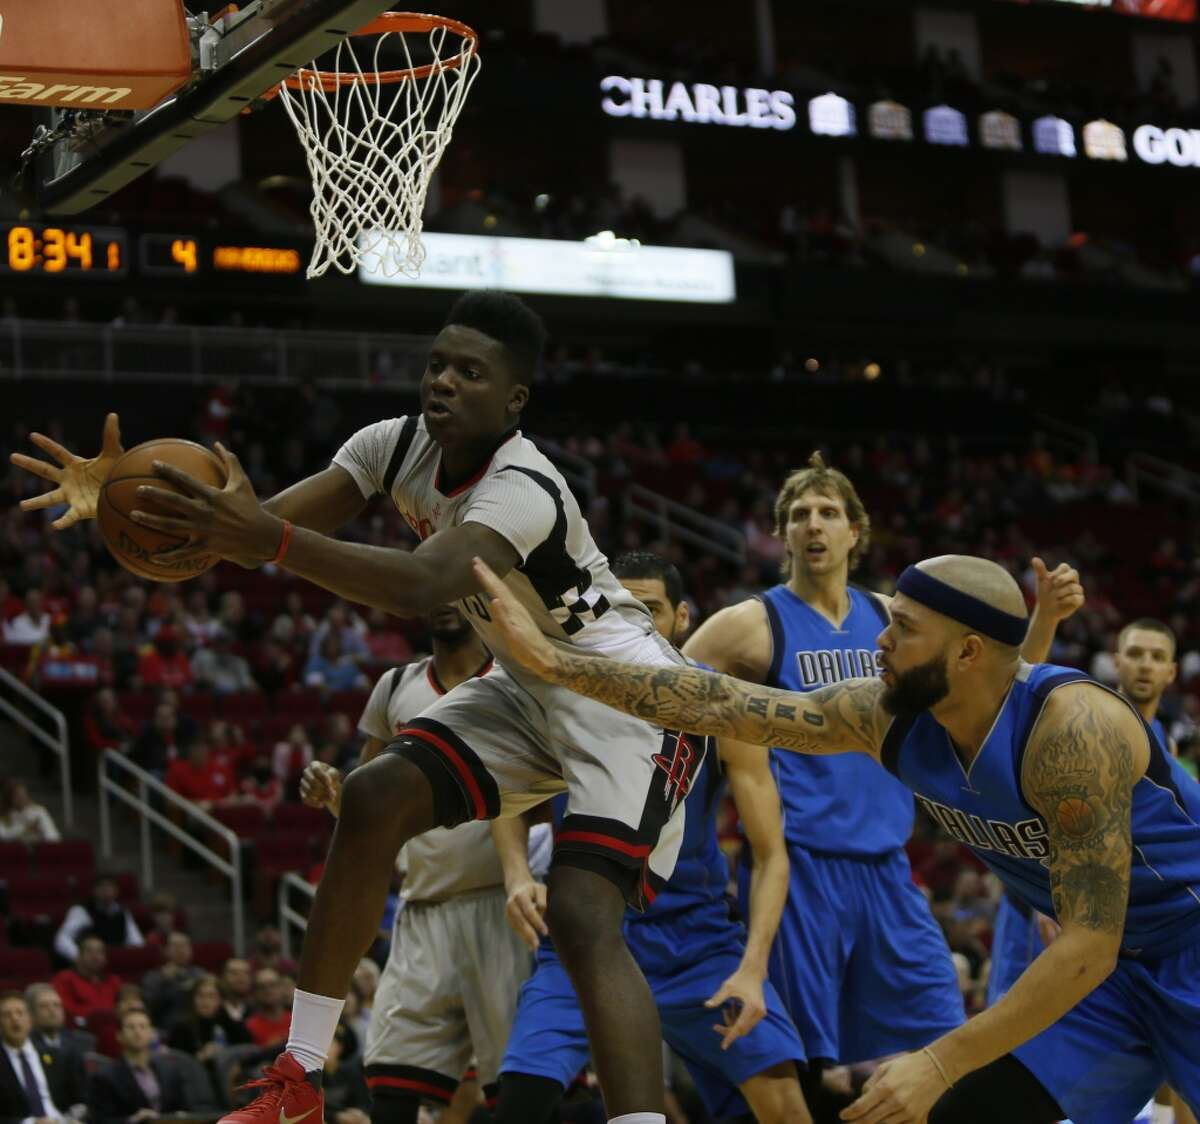 Houston Rockets forward Clint Capela (15) goes after a rebound under the pressure of Dallas Mavericks guard Deron Williams (8), Sunday, Jan. 24, 2016, at the Toyota Center in Houston. ( Marie D. De Jesus / Houston Chronicle )